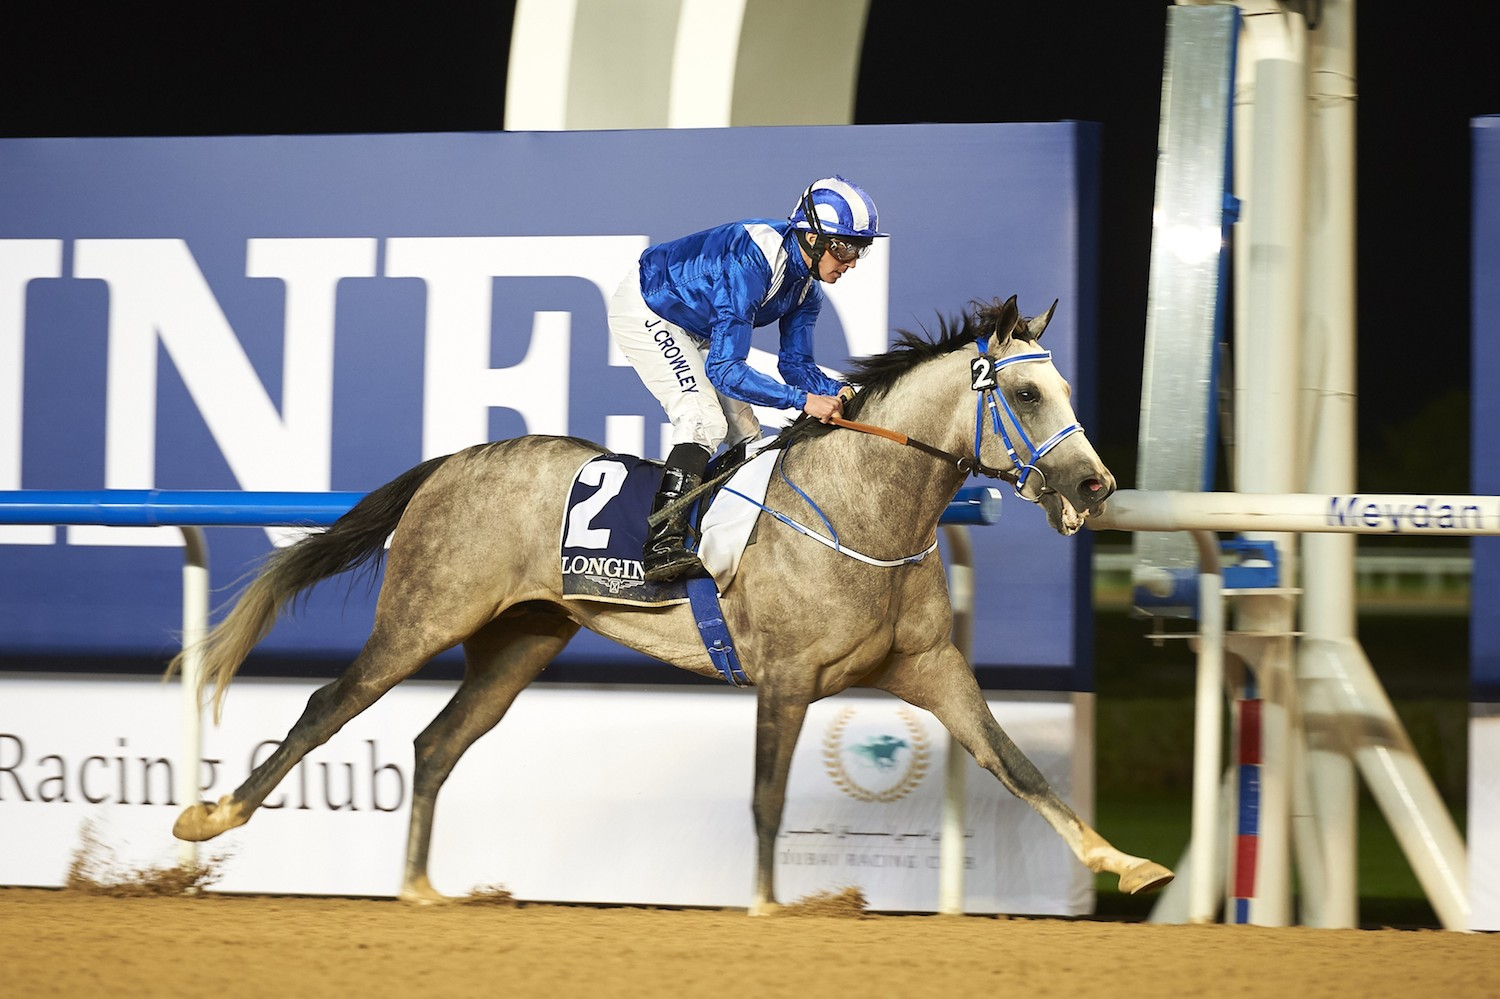 AF Mathmoon kicks off the 2017 Dubai World Cup Carnival with a win over Rb Burn. ©Dubai Racing Club/Andrew Watkins